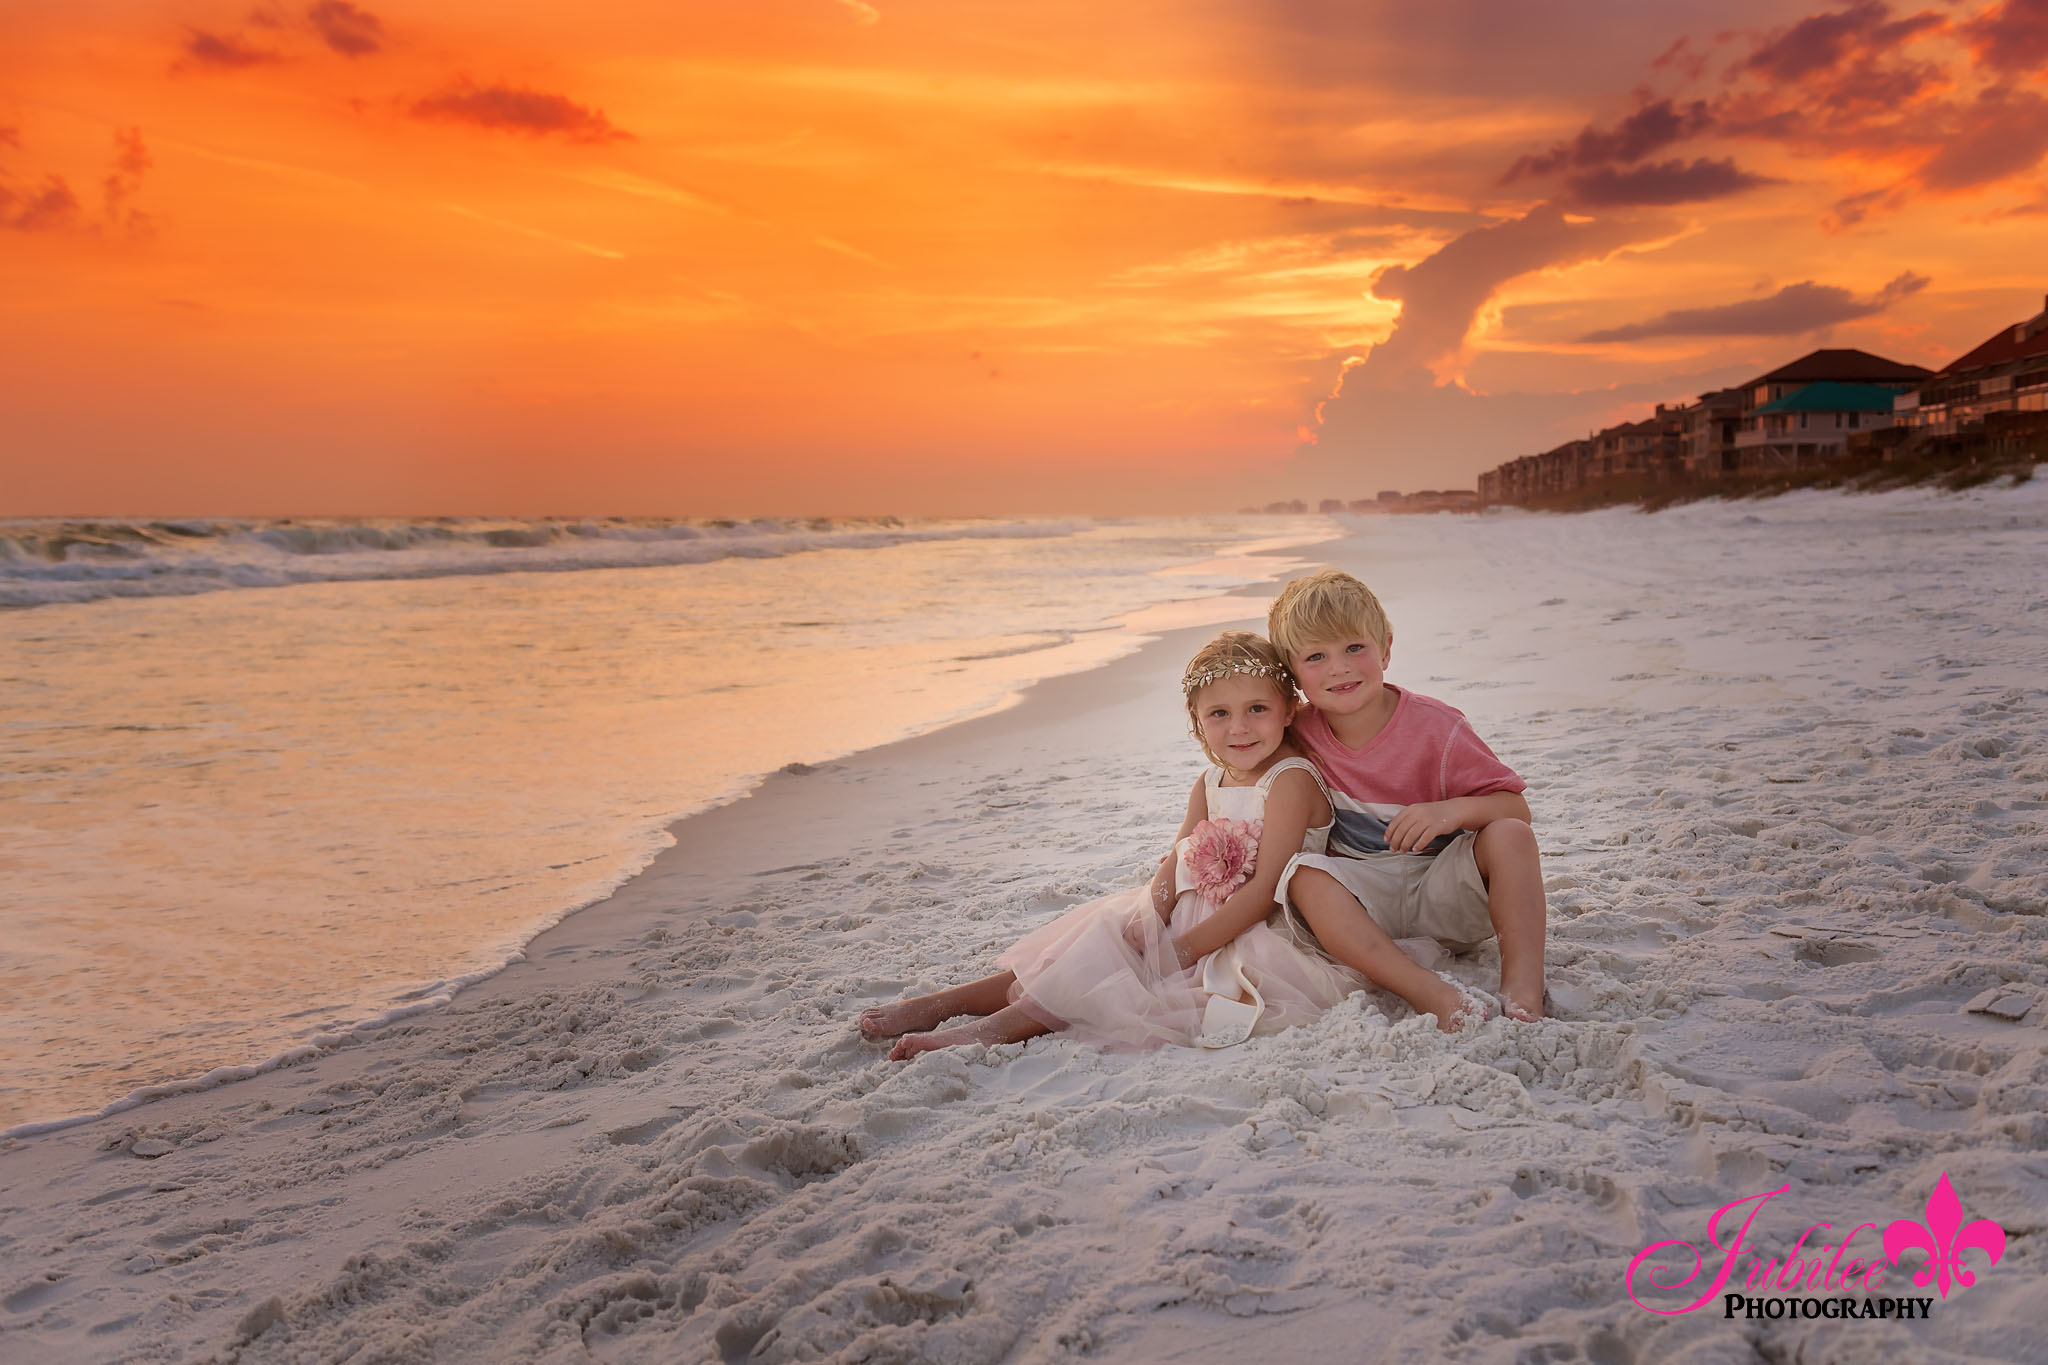 destin_beach_photographer_6207